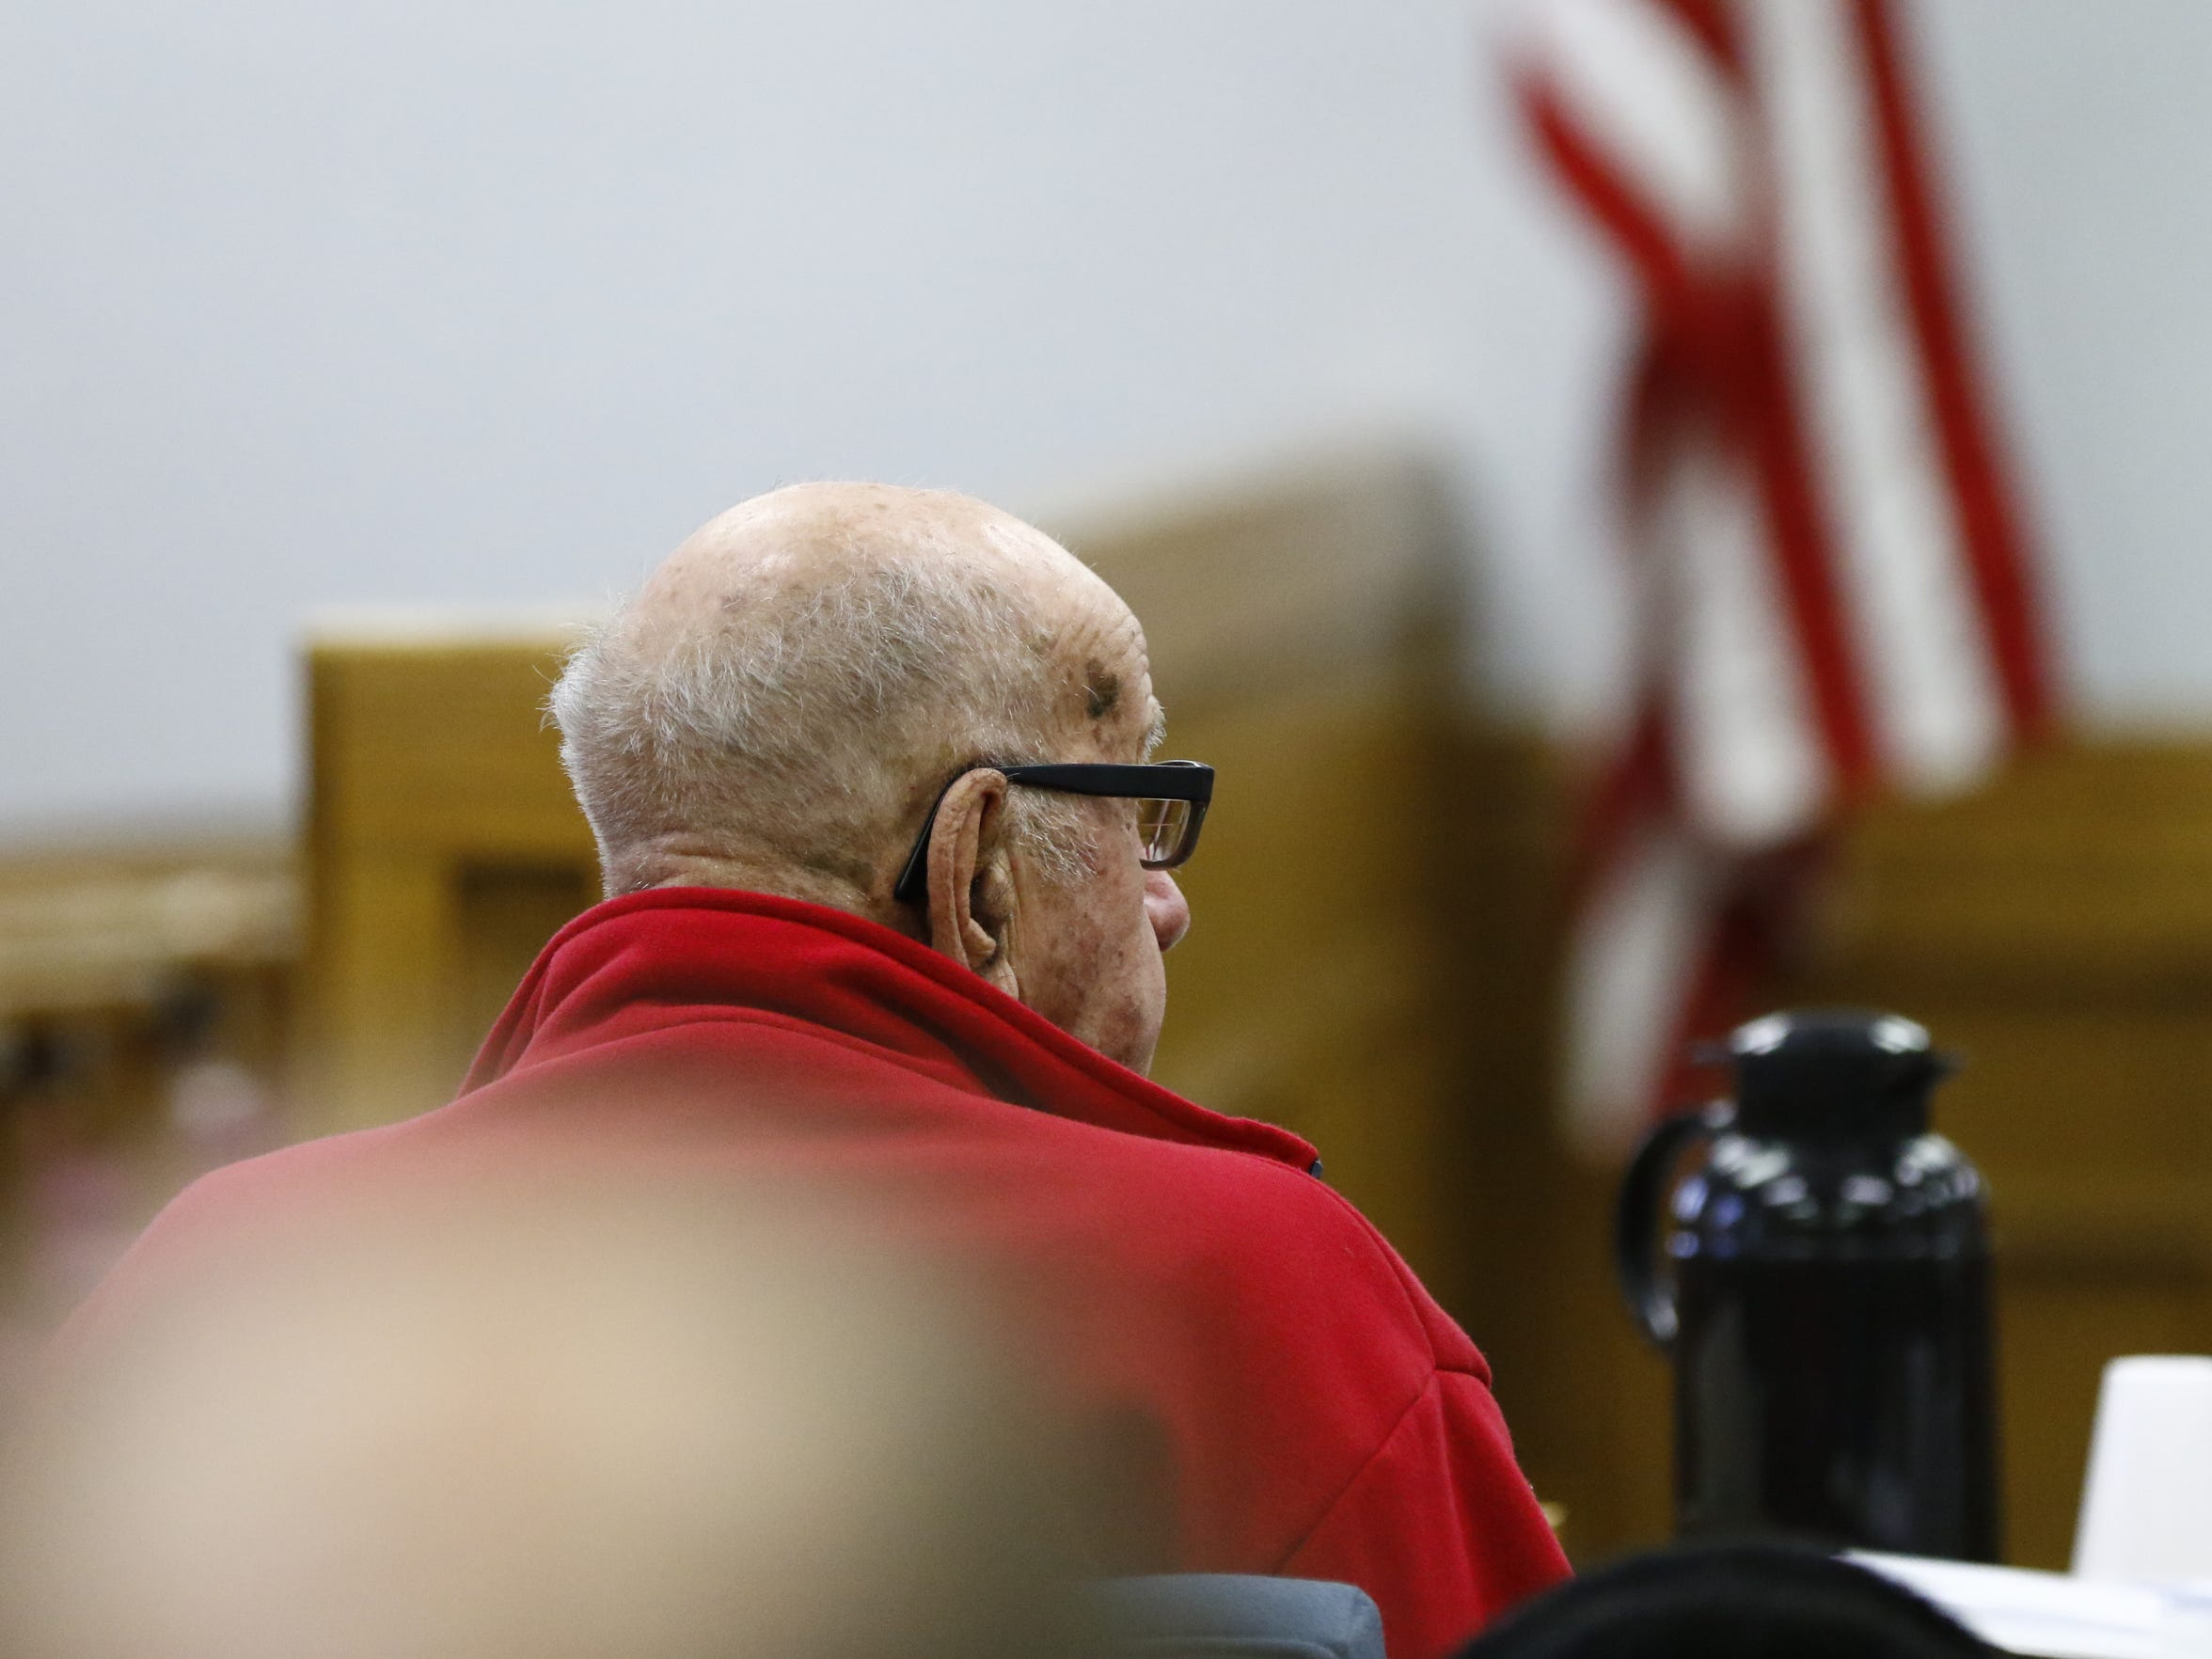 Edward Heckendorf, 92, sits through a trial on Feb. 17, 2016. He was convicted that week by jury on eight counts of sexual assault of child under 13.